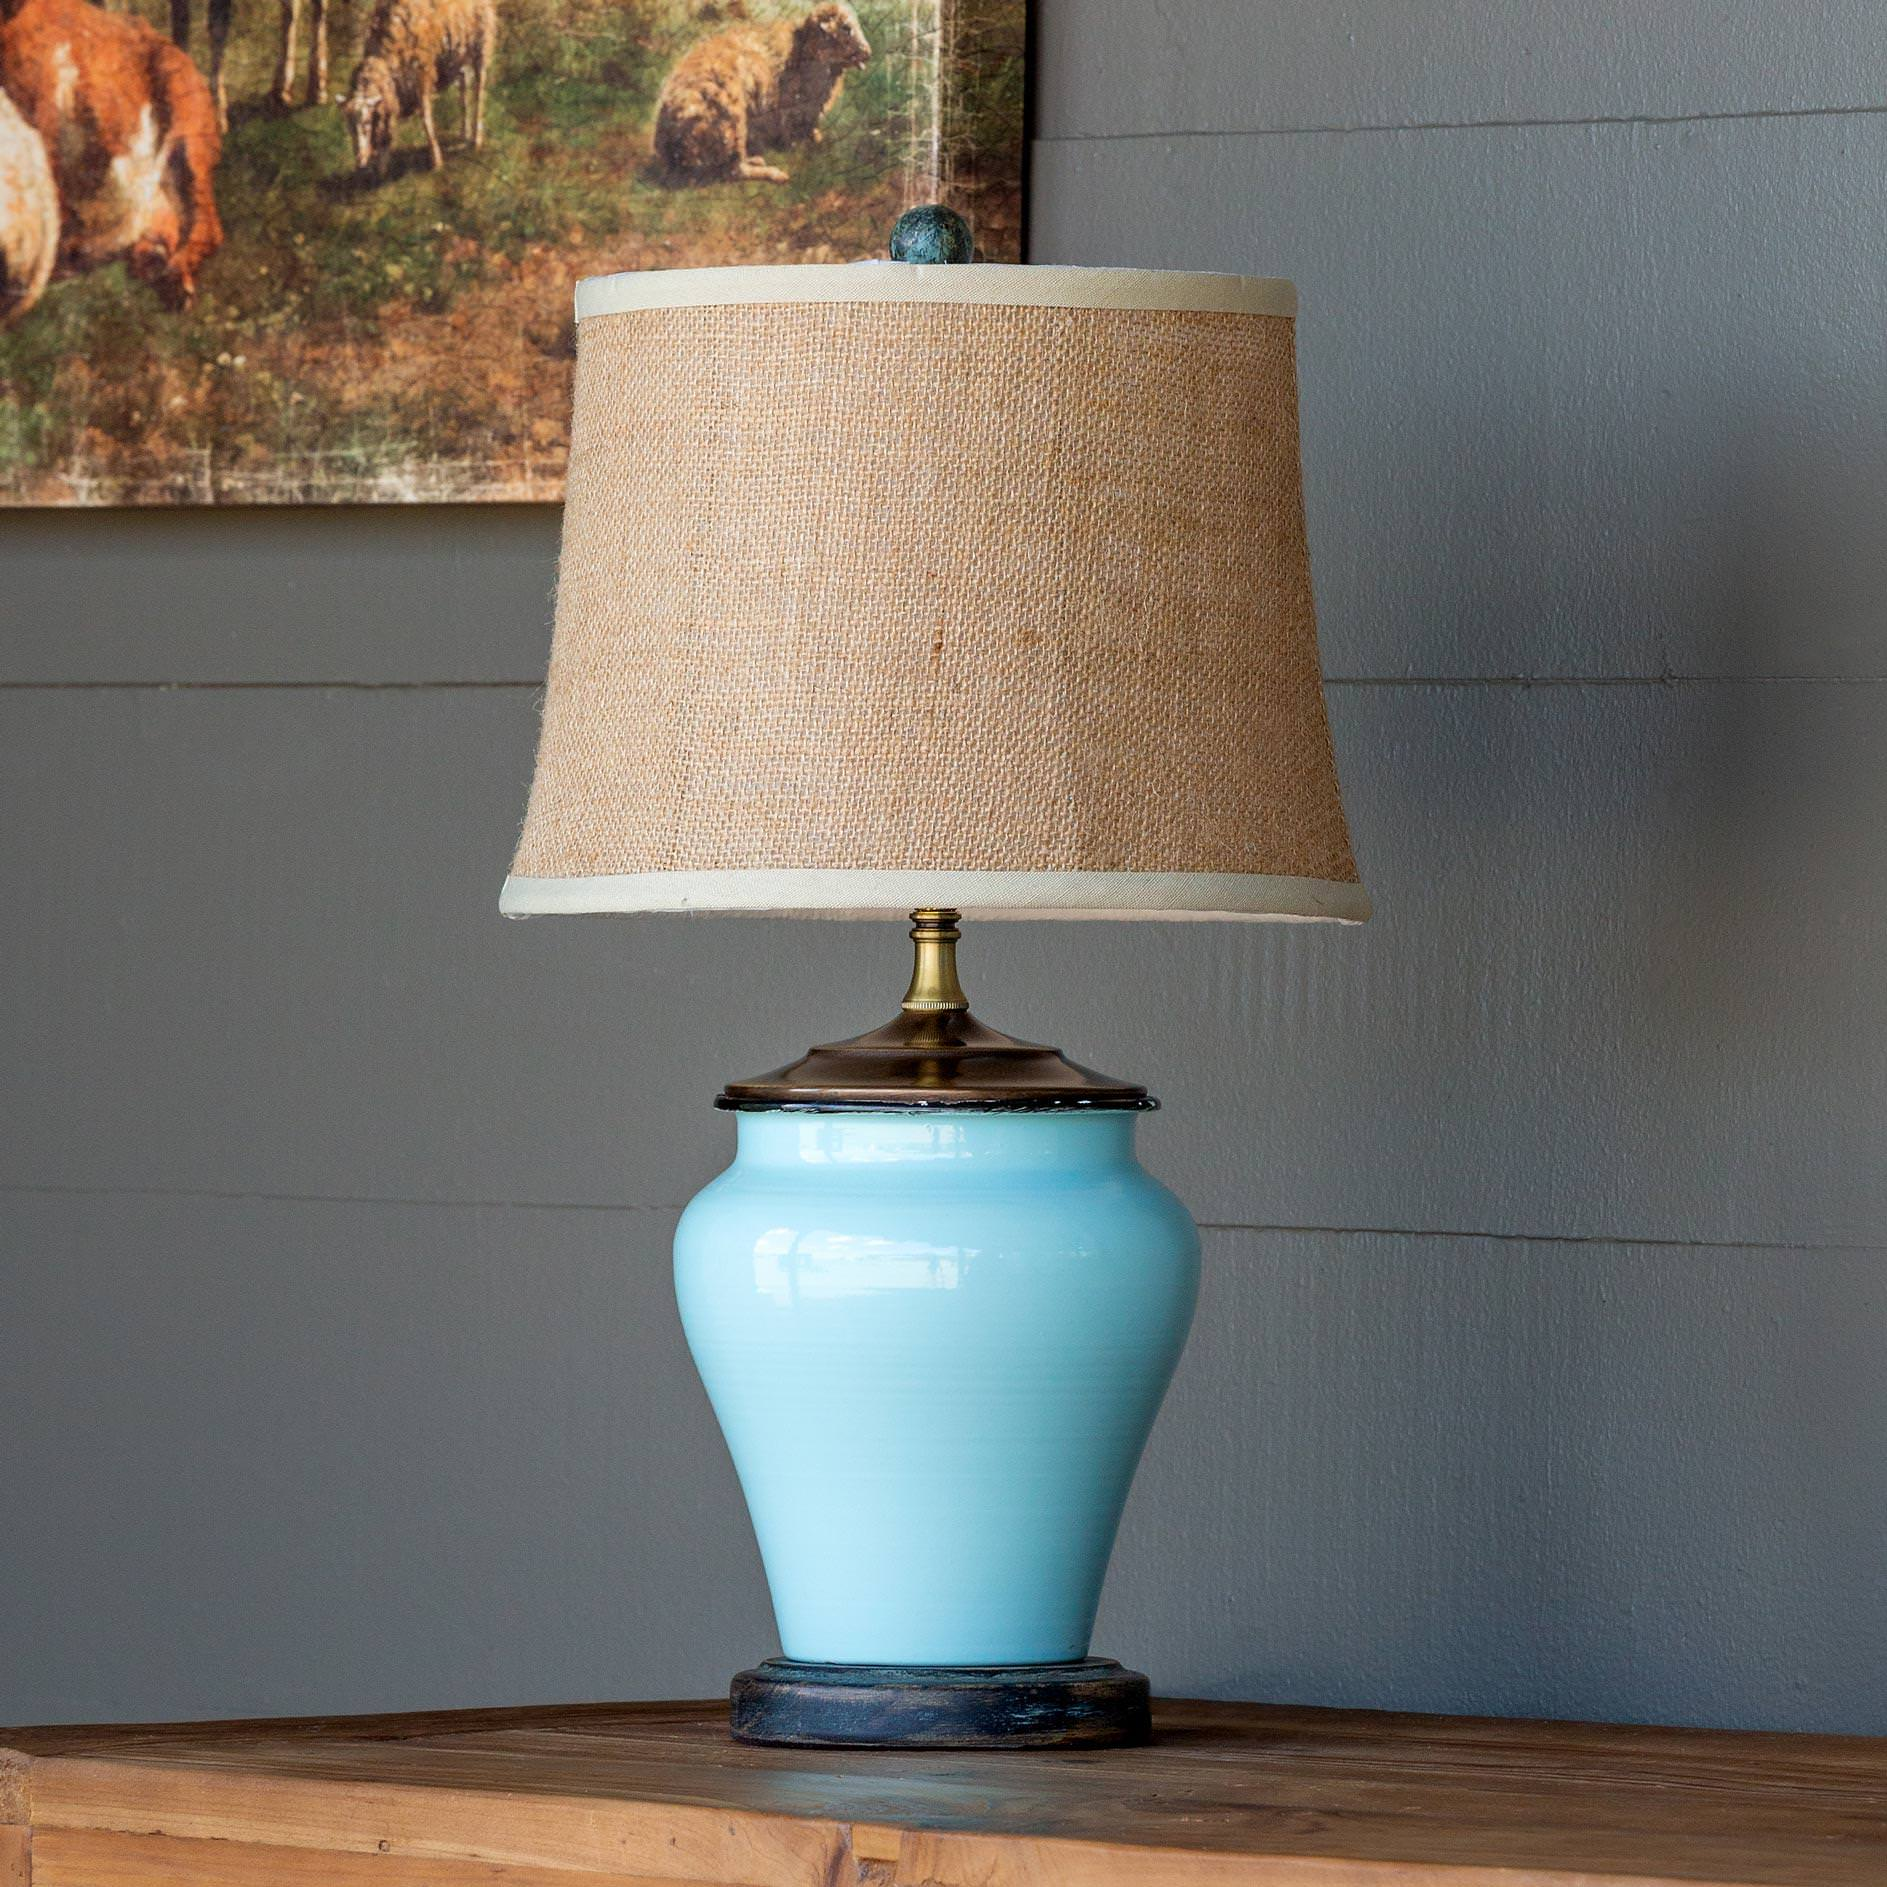 Enamel Ginger Jar Vase Lamp